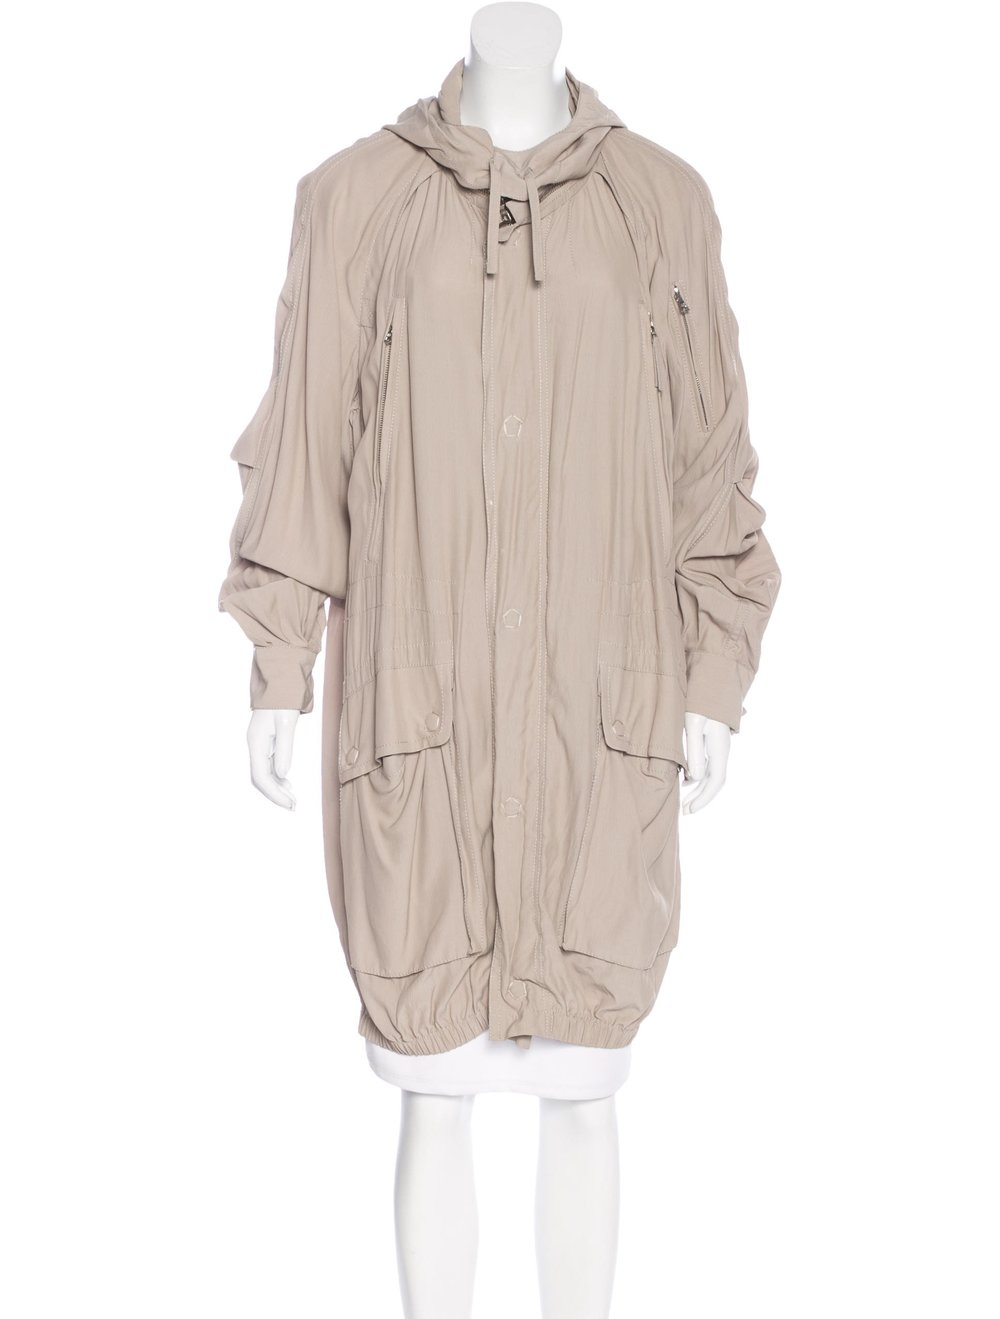 MARC JACOBS Hooded Anorak Jacket; Size: S; $147.50